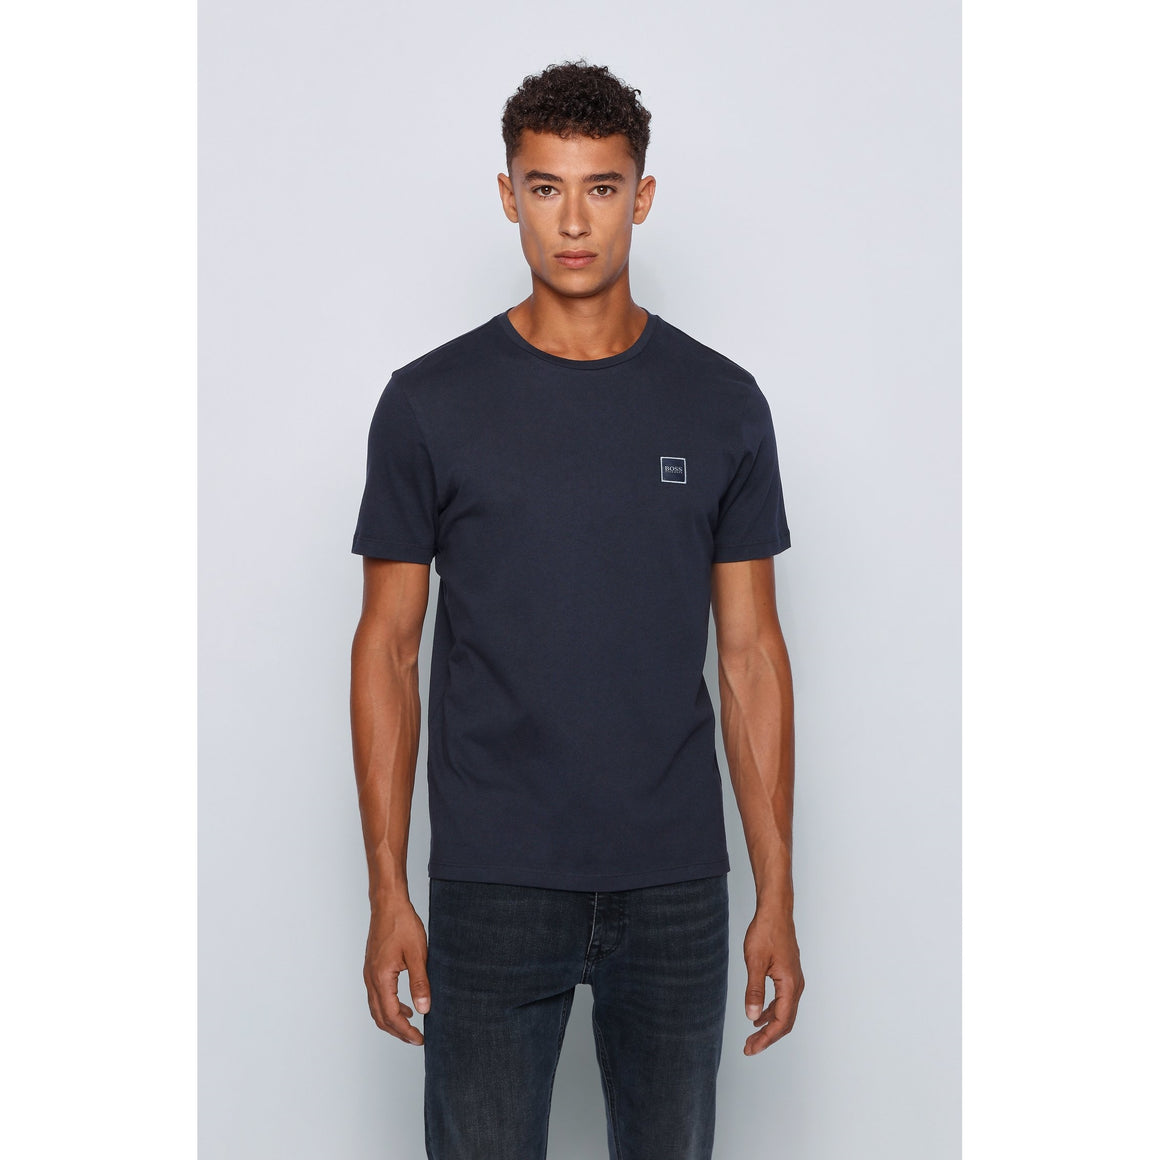 Plain Tee Shirt for Men in Navy